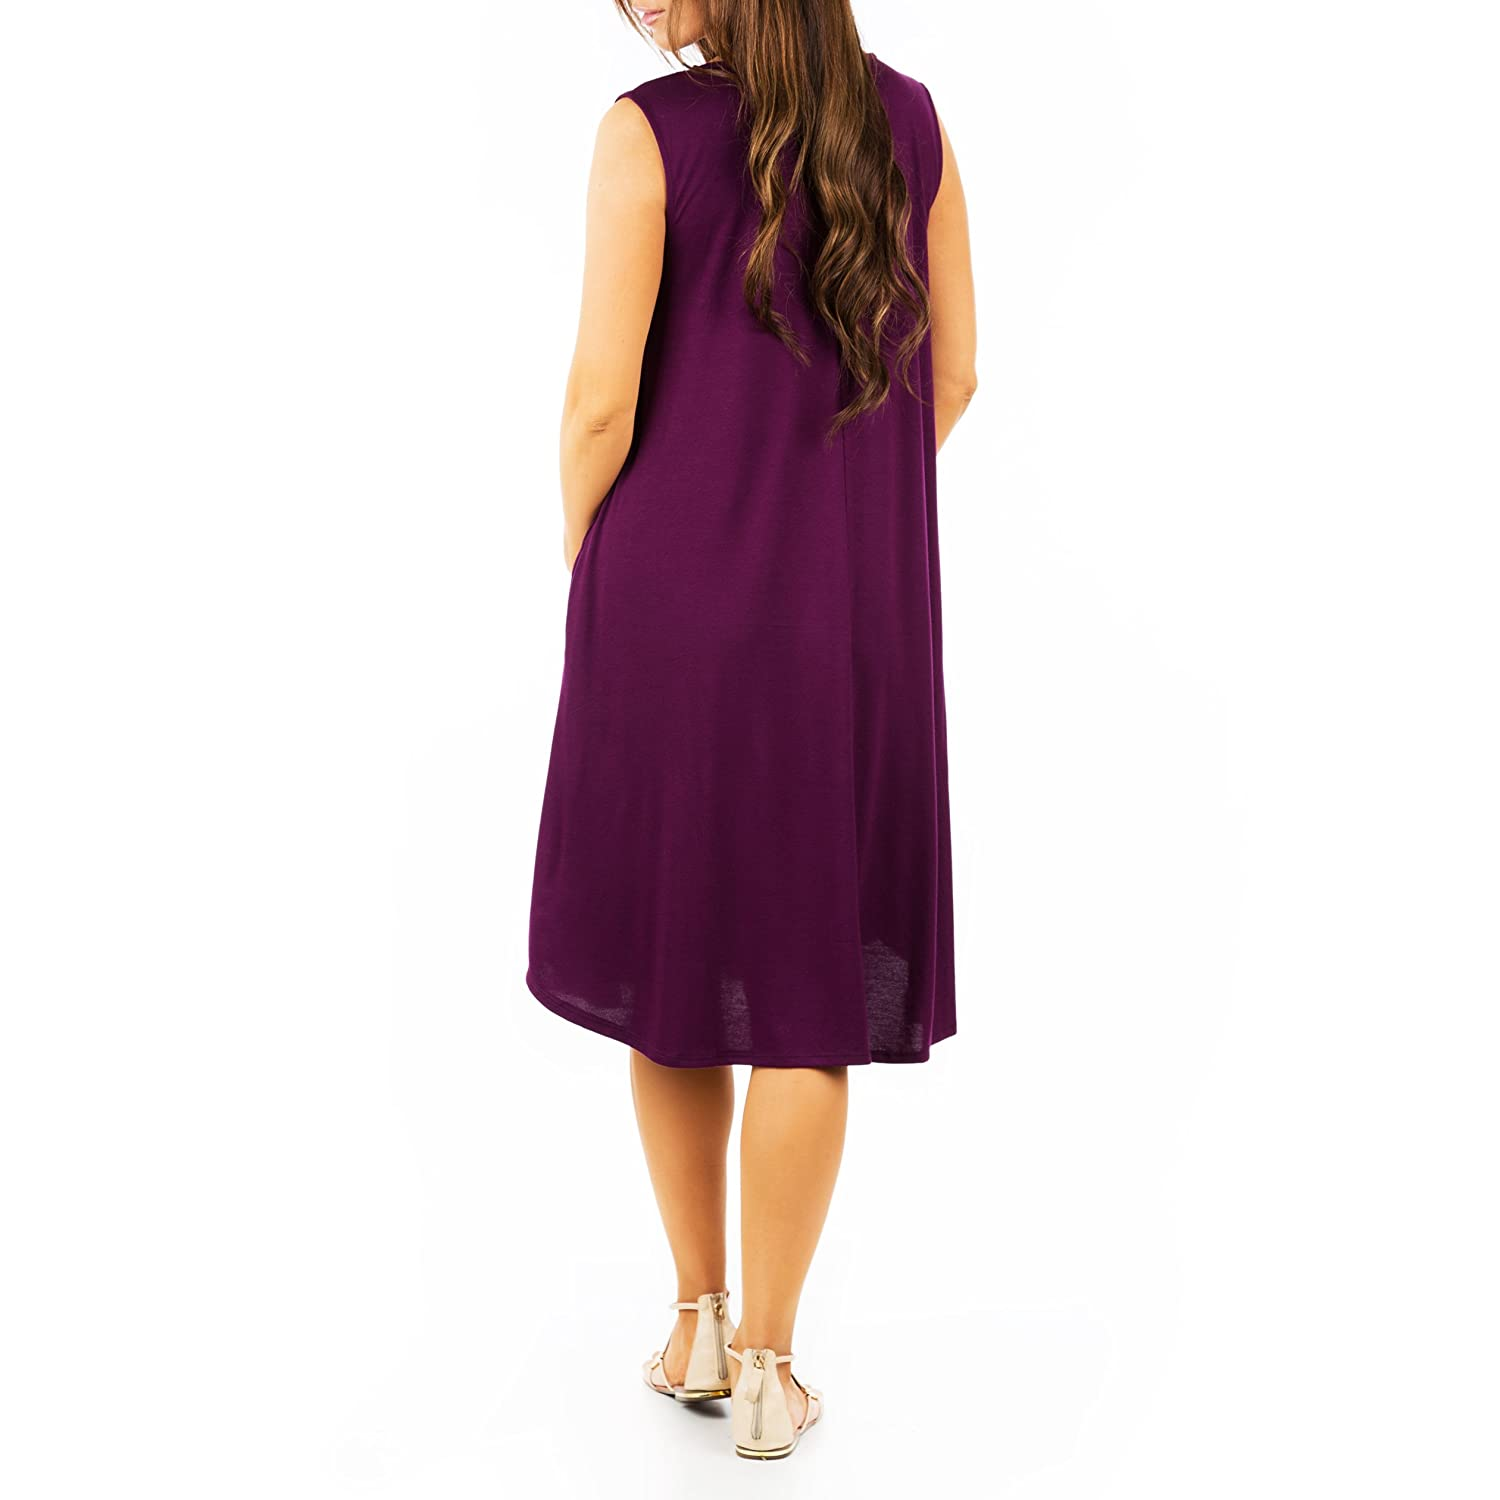 Mother Bee Womens Crew Neck Maternity Dress with Pockets by Zenna